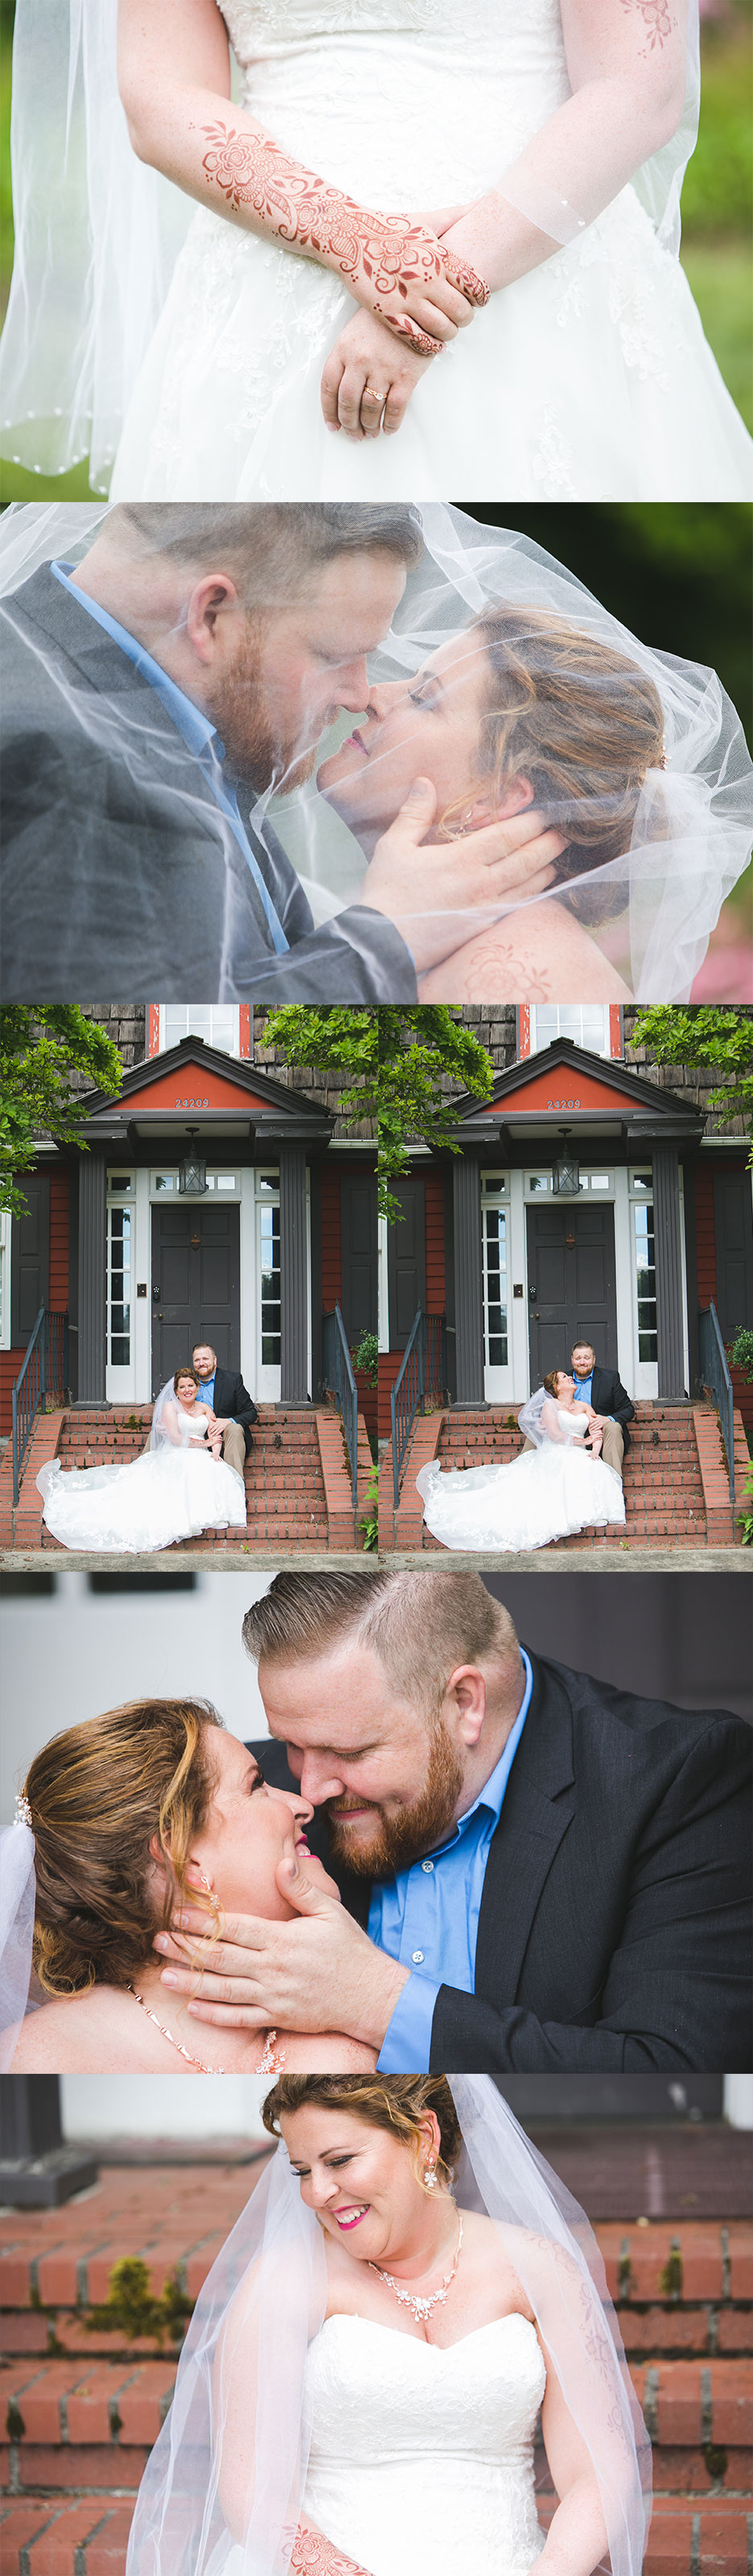 Wedding Photography in Washington by Michelle Newell